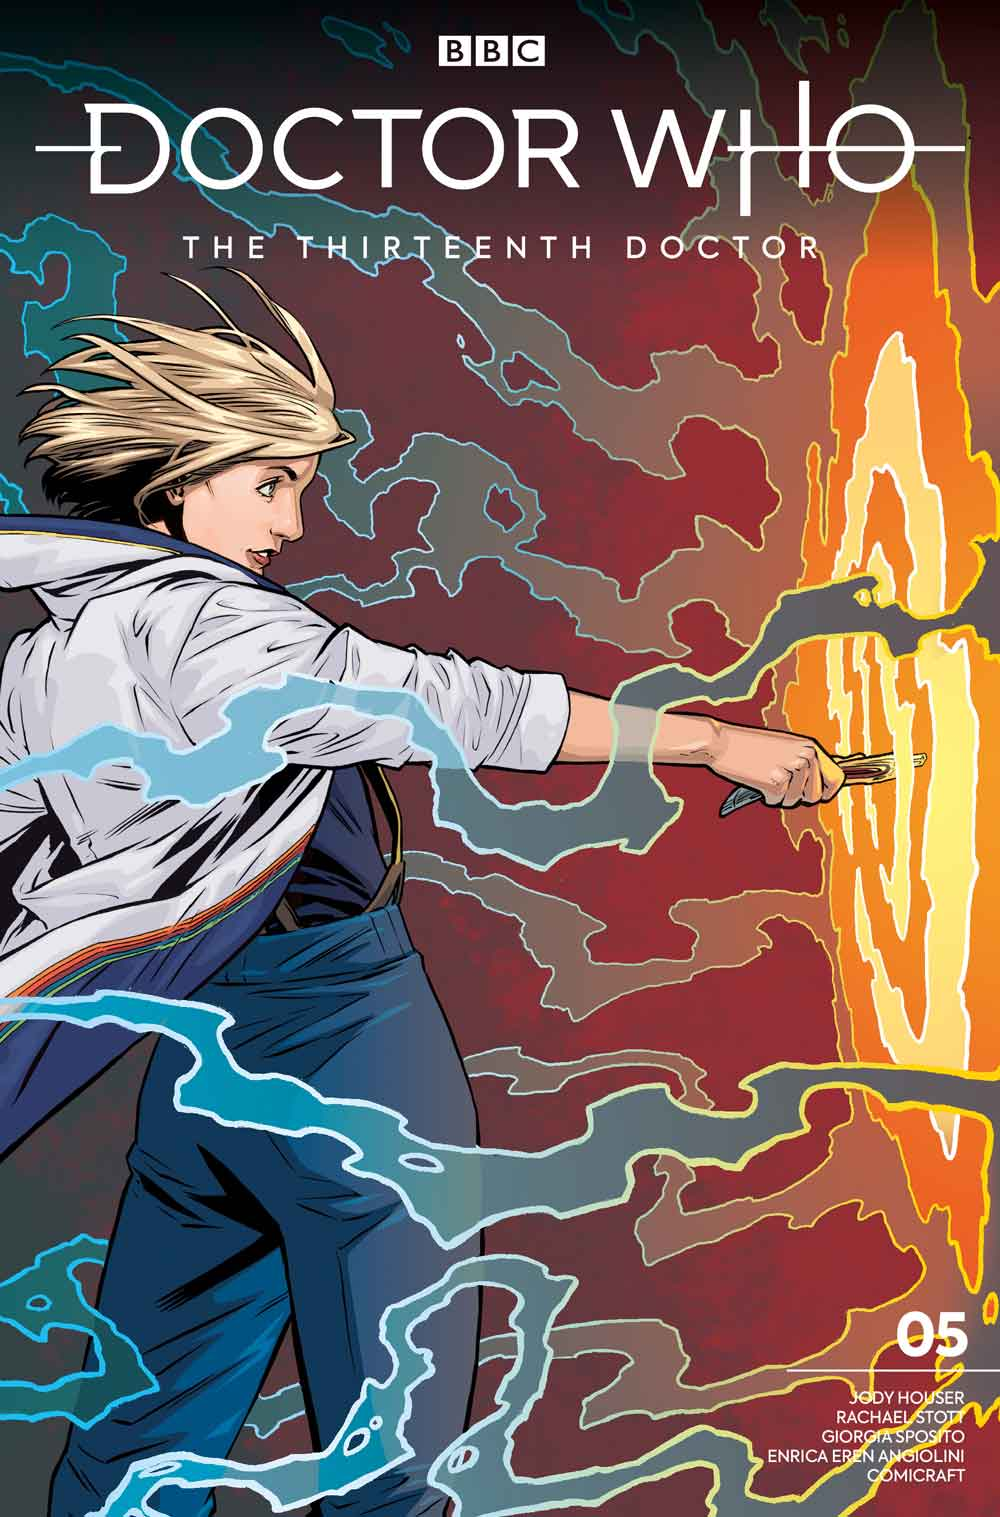 covers preview doctor who the thirteenth doctor 5 blogtor who